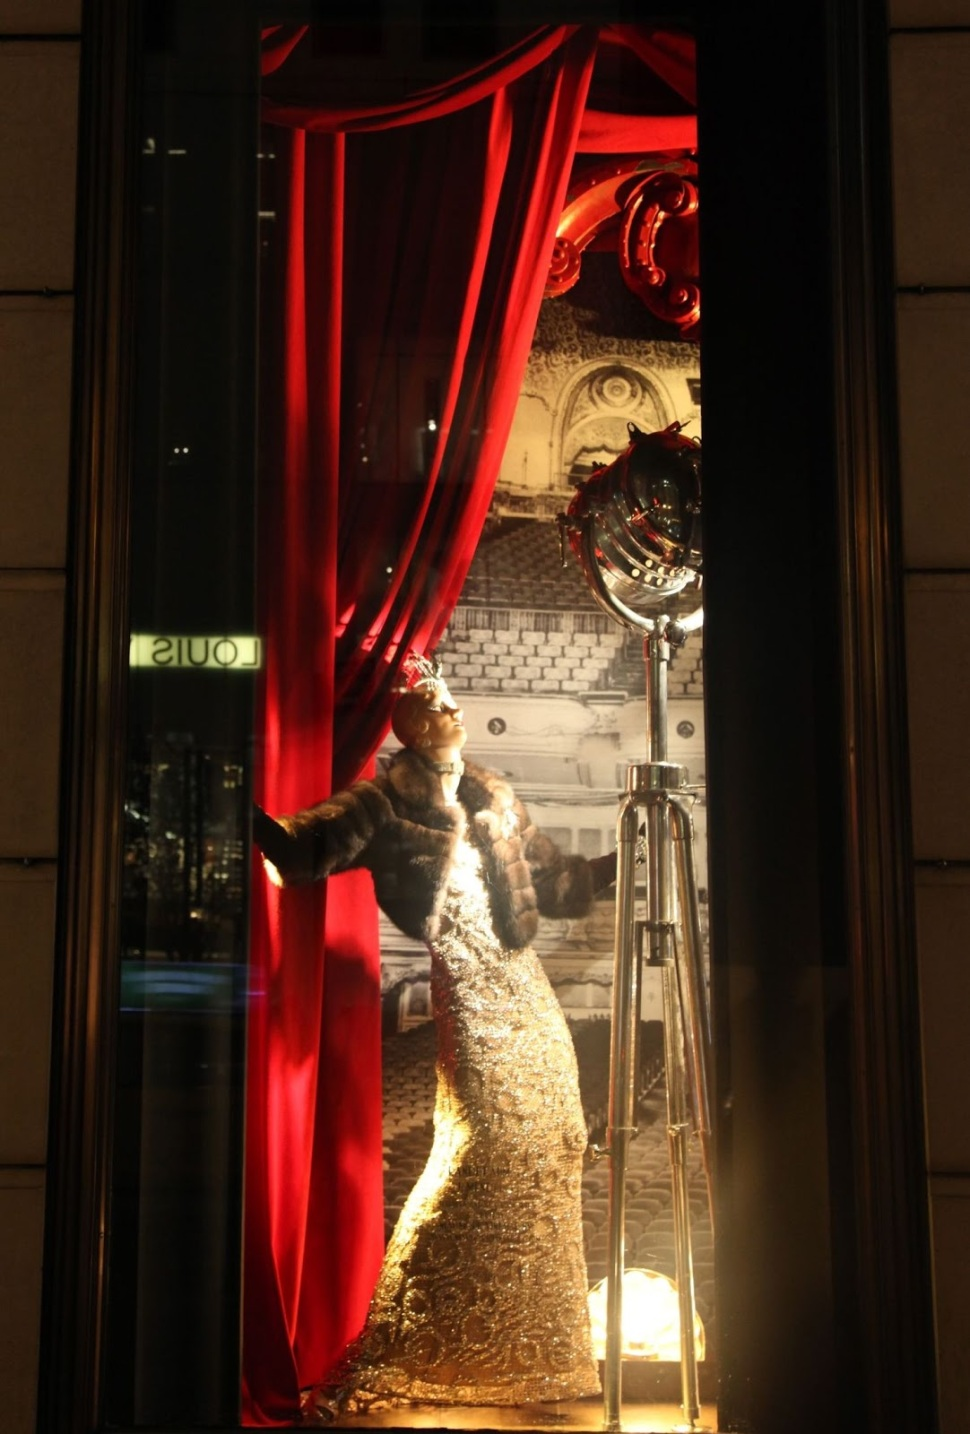 bergdorf goodman holiday windows 2012 habituallychic 104